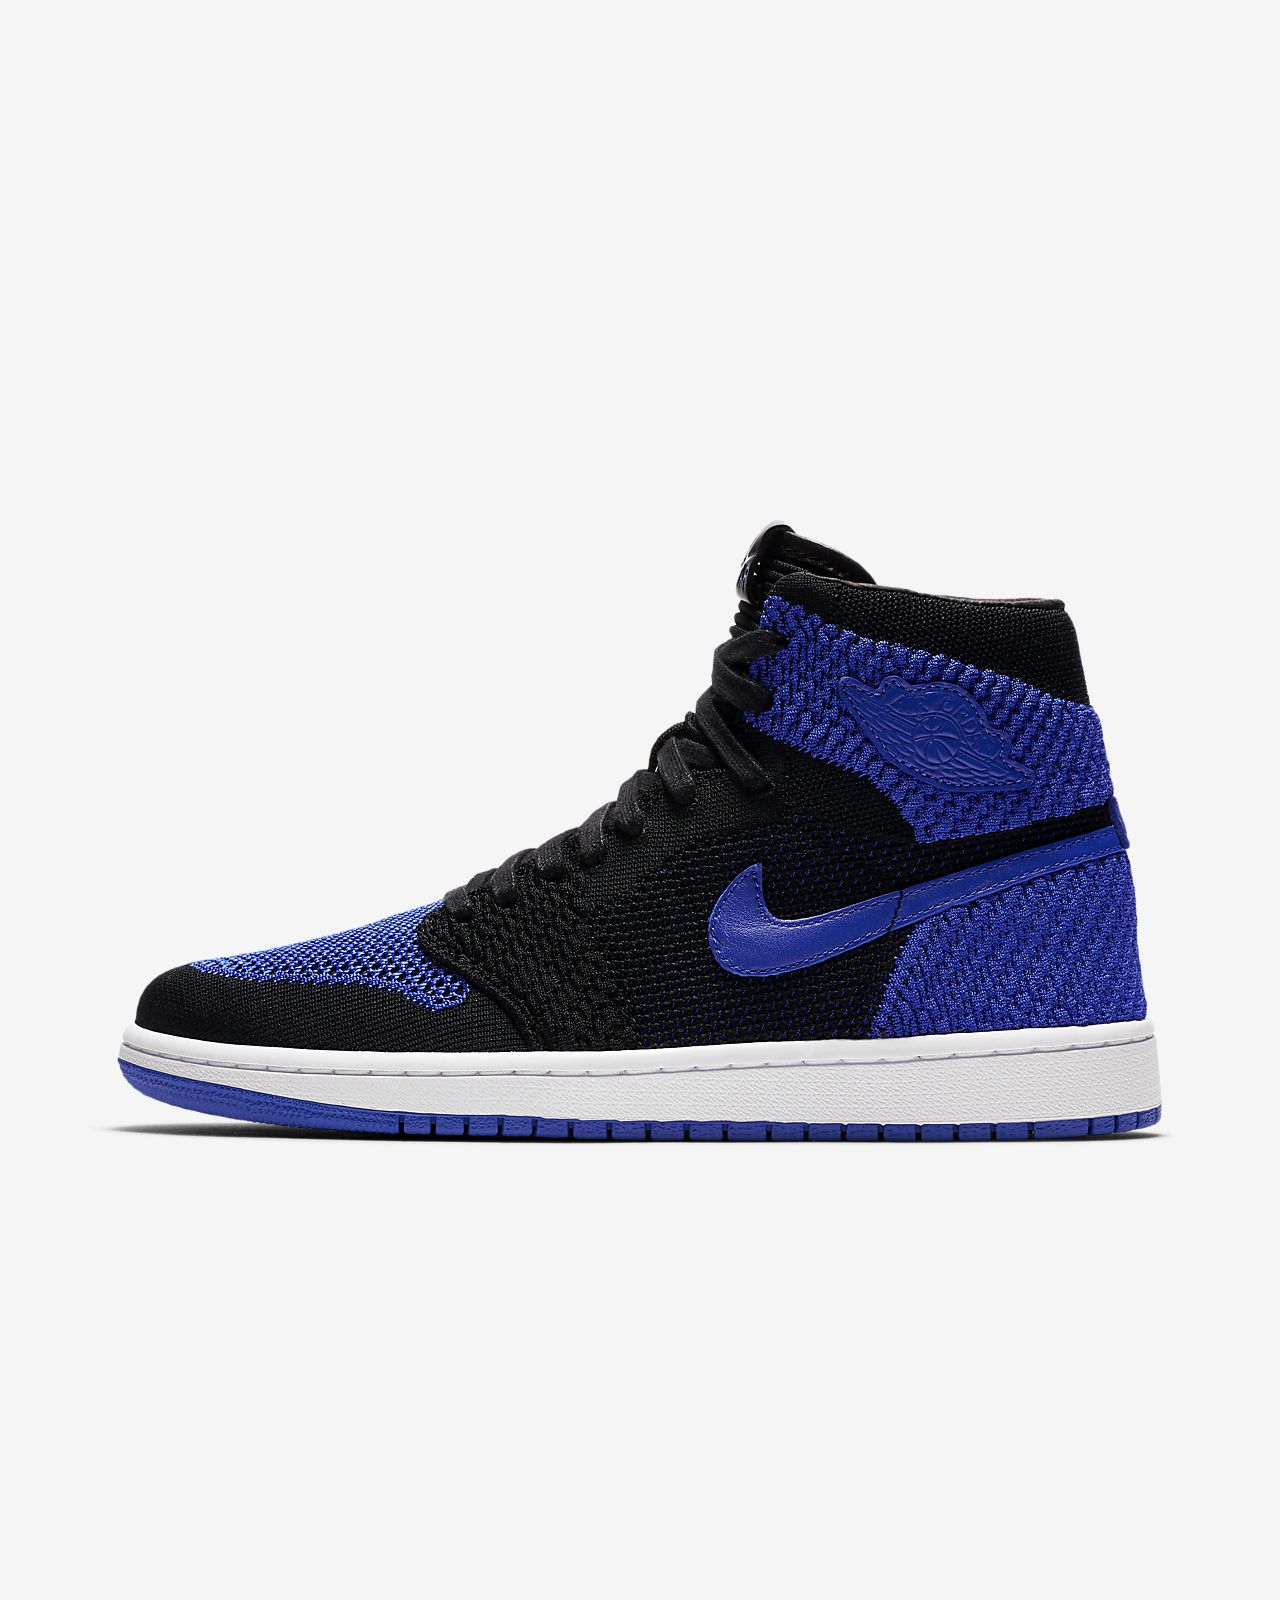 3738a0c2d1a2 Air Jordan 1 Retro High Flyknit Men s Shoe. Nike.com CA